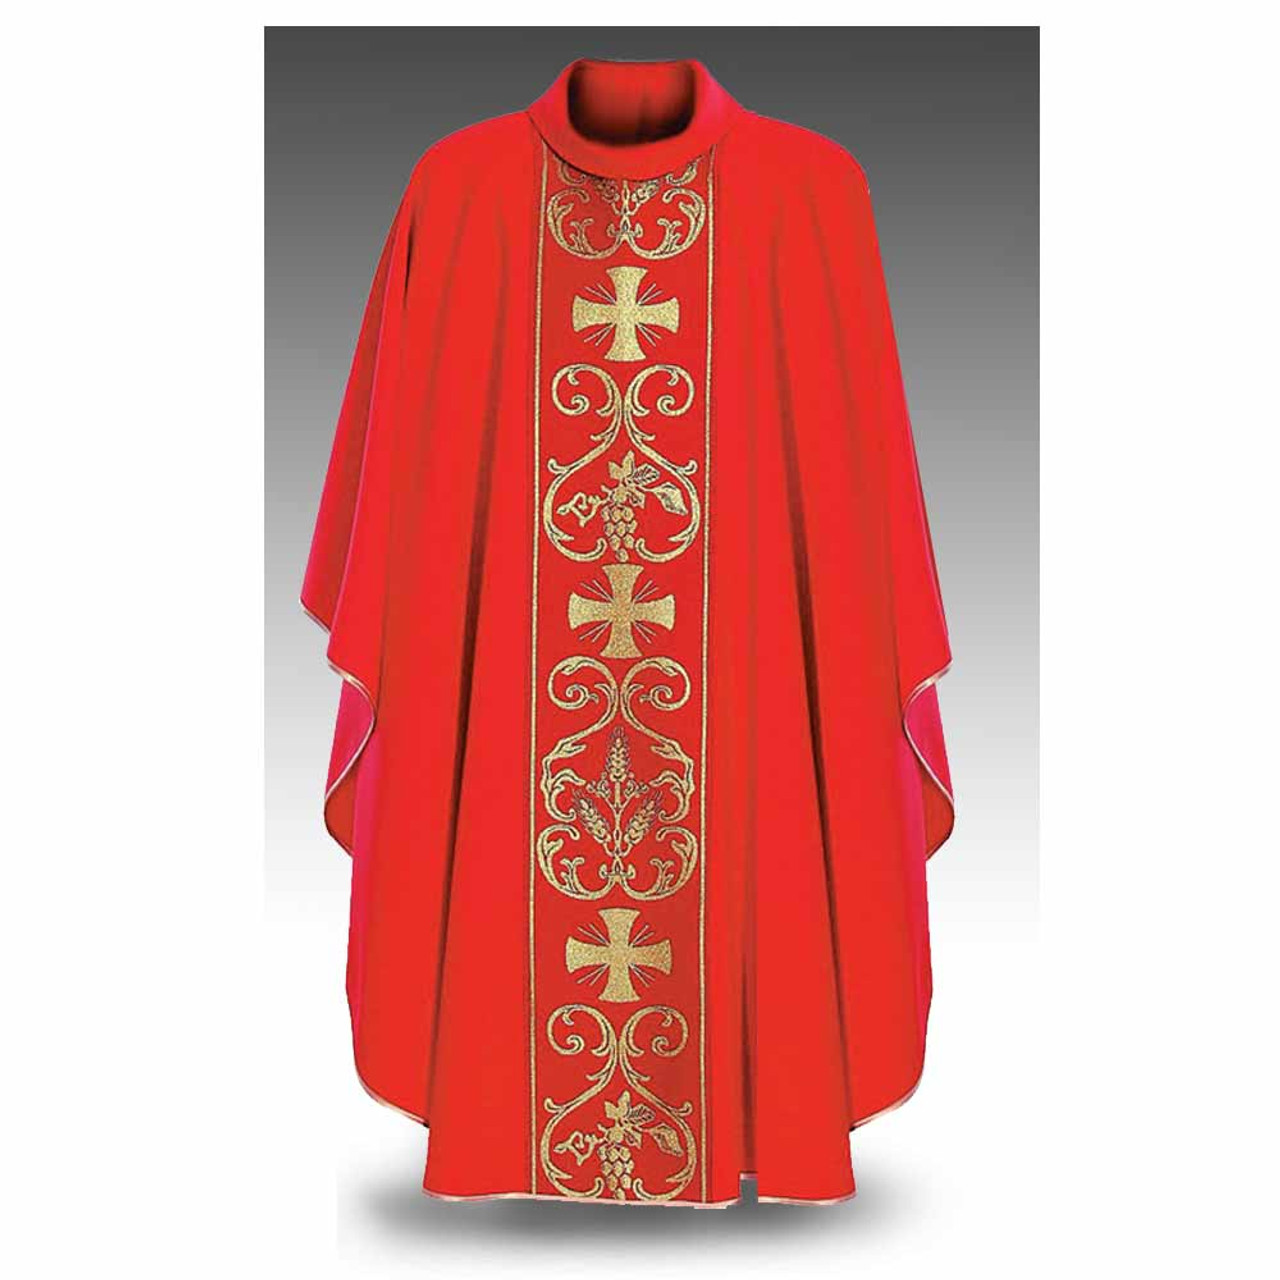 Red Chasuble Cowl Collar Hayes & Finch